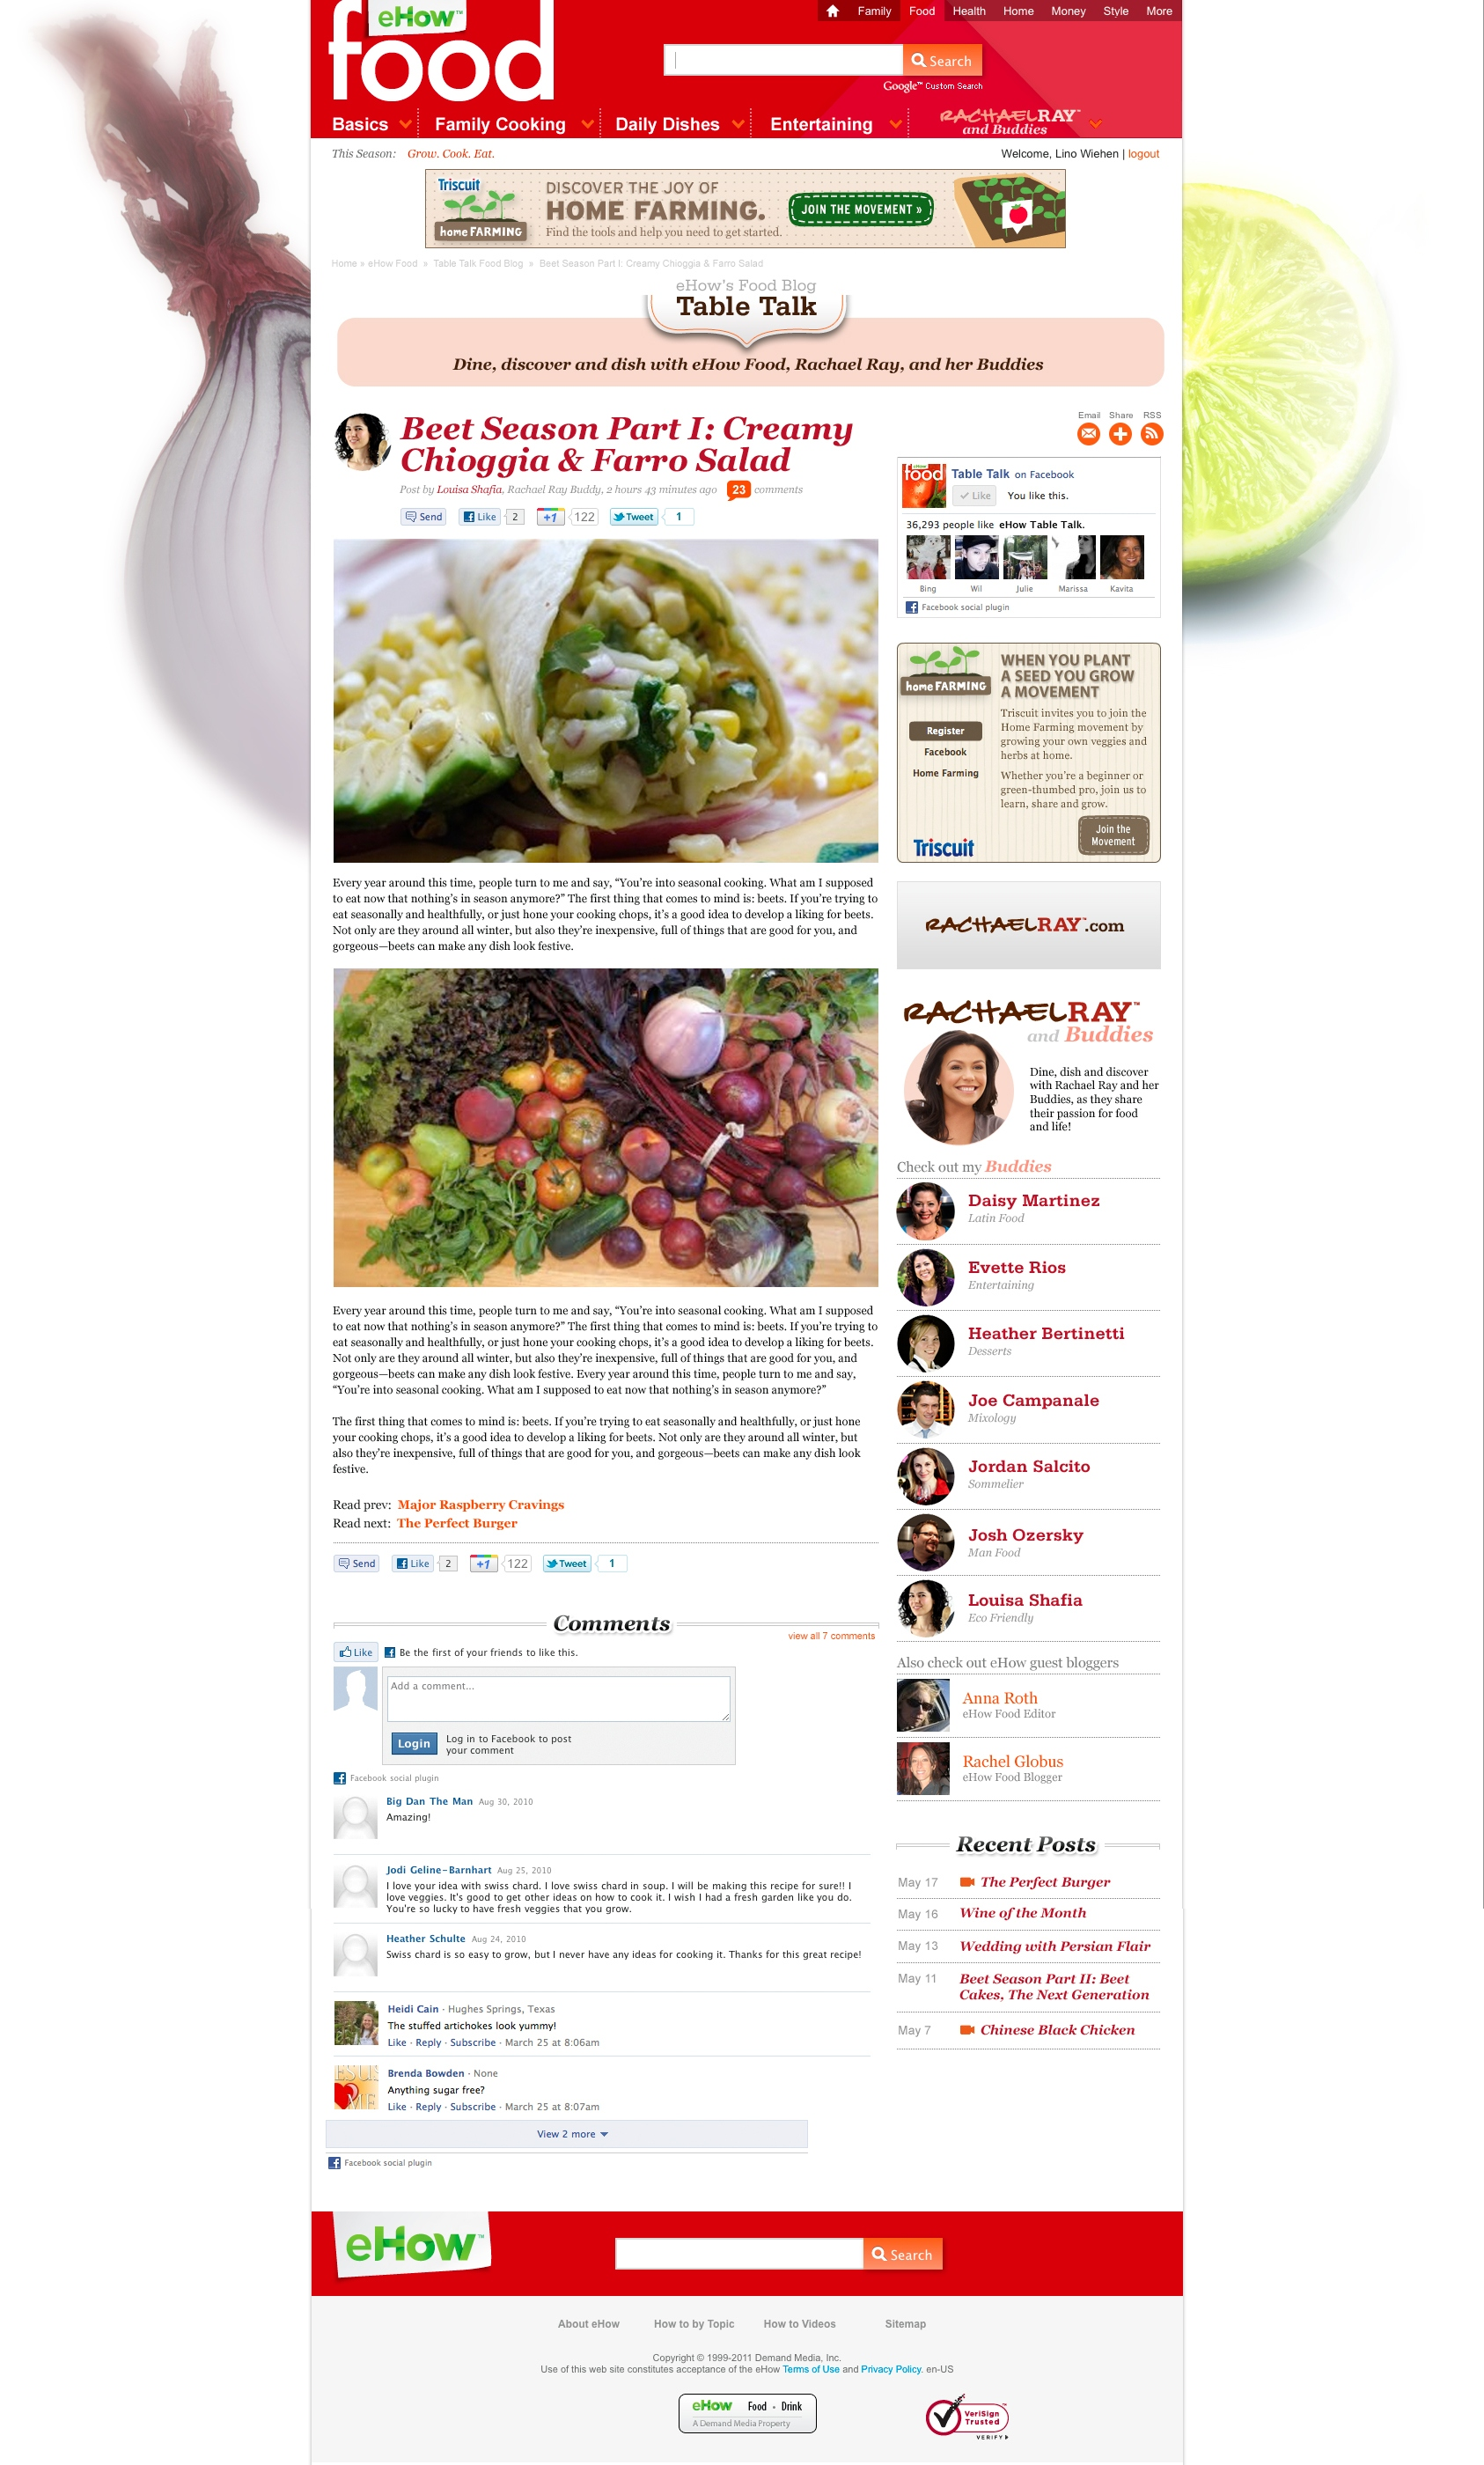 09_Rachael_Ray_BLOG_POST_PAGES.jpg